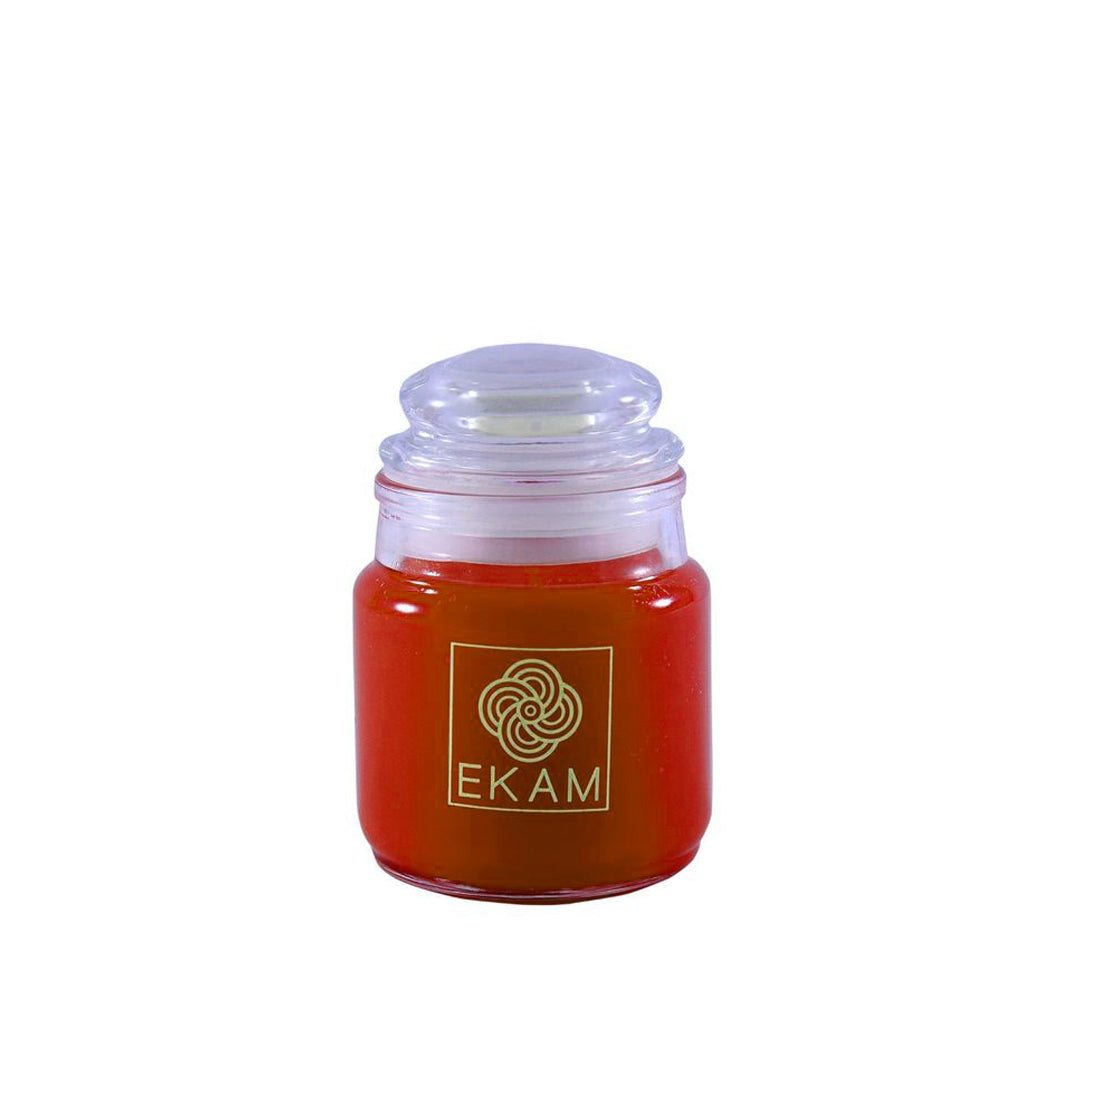 Ekam cinnamon scented candle | Jar candles